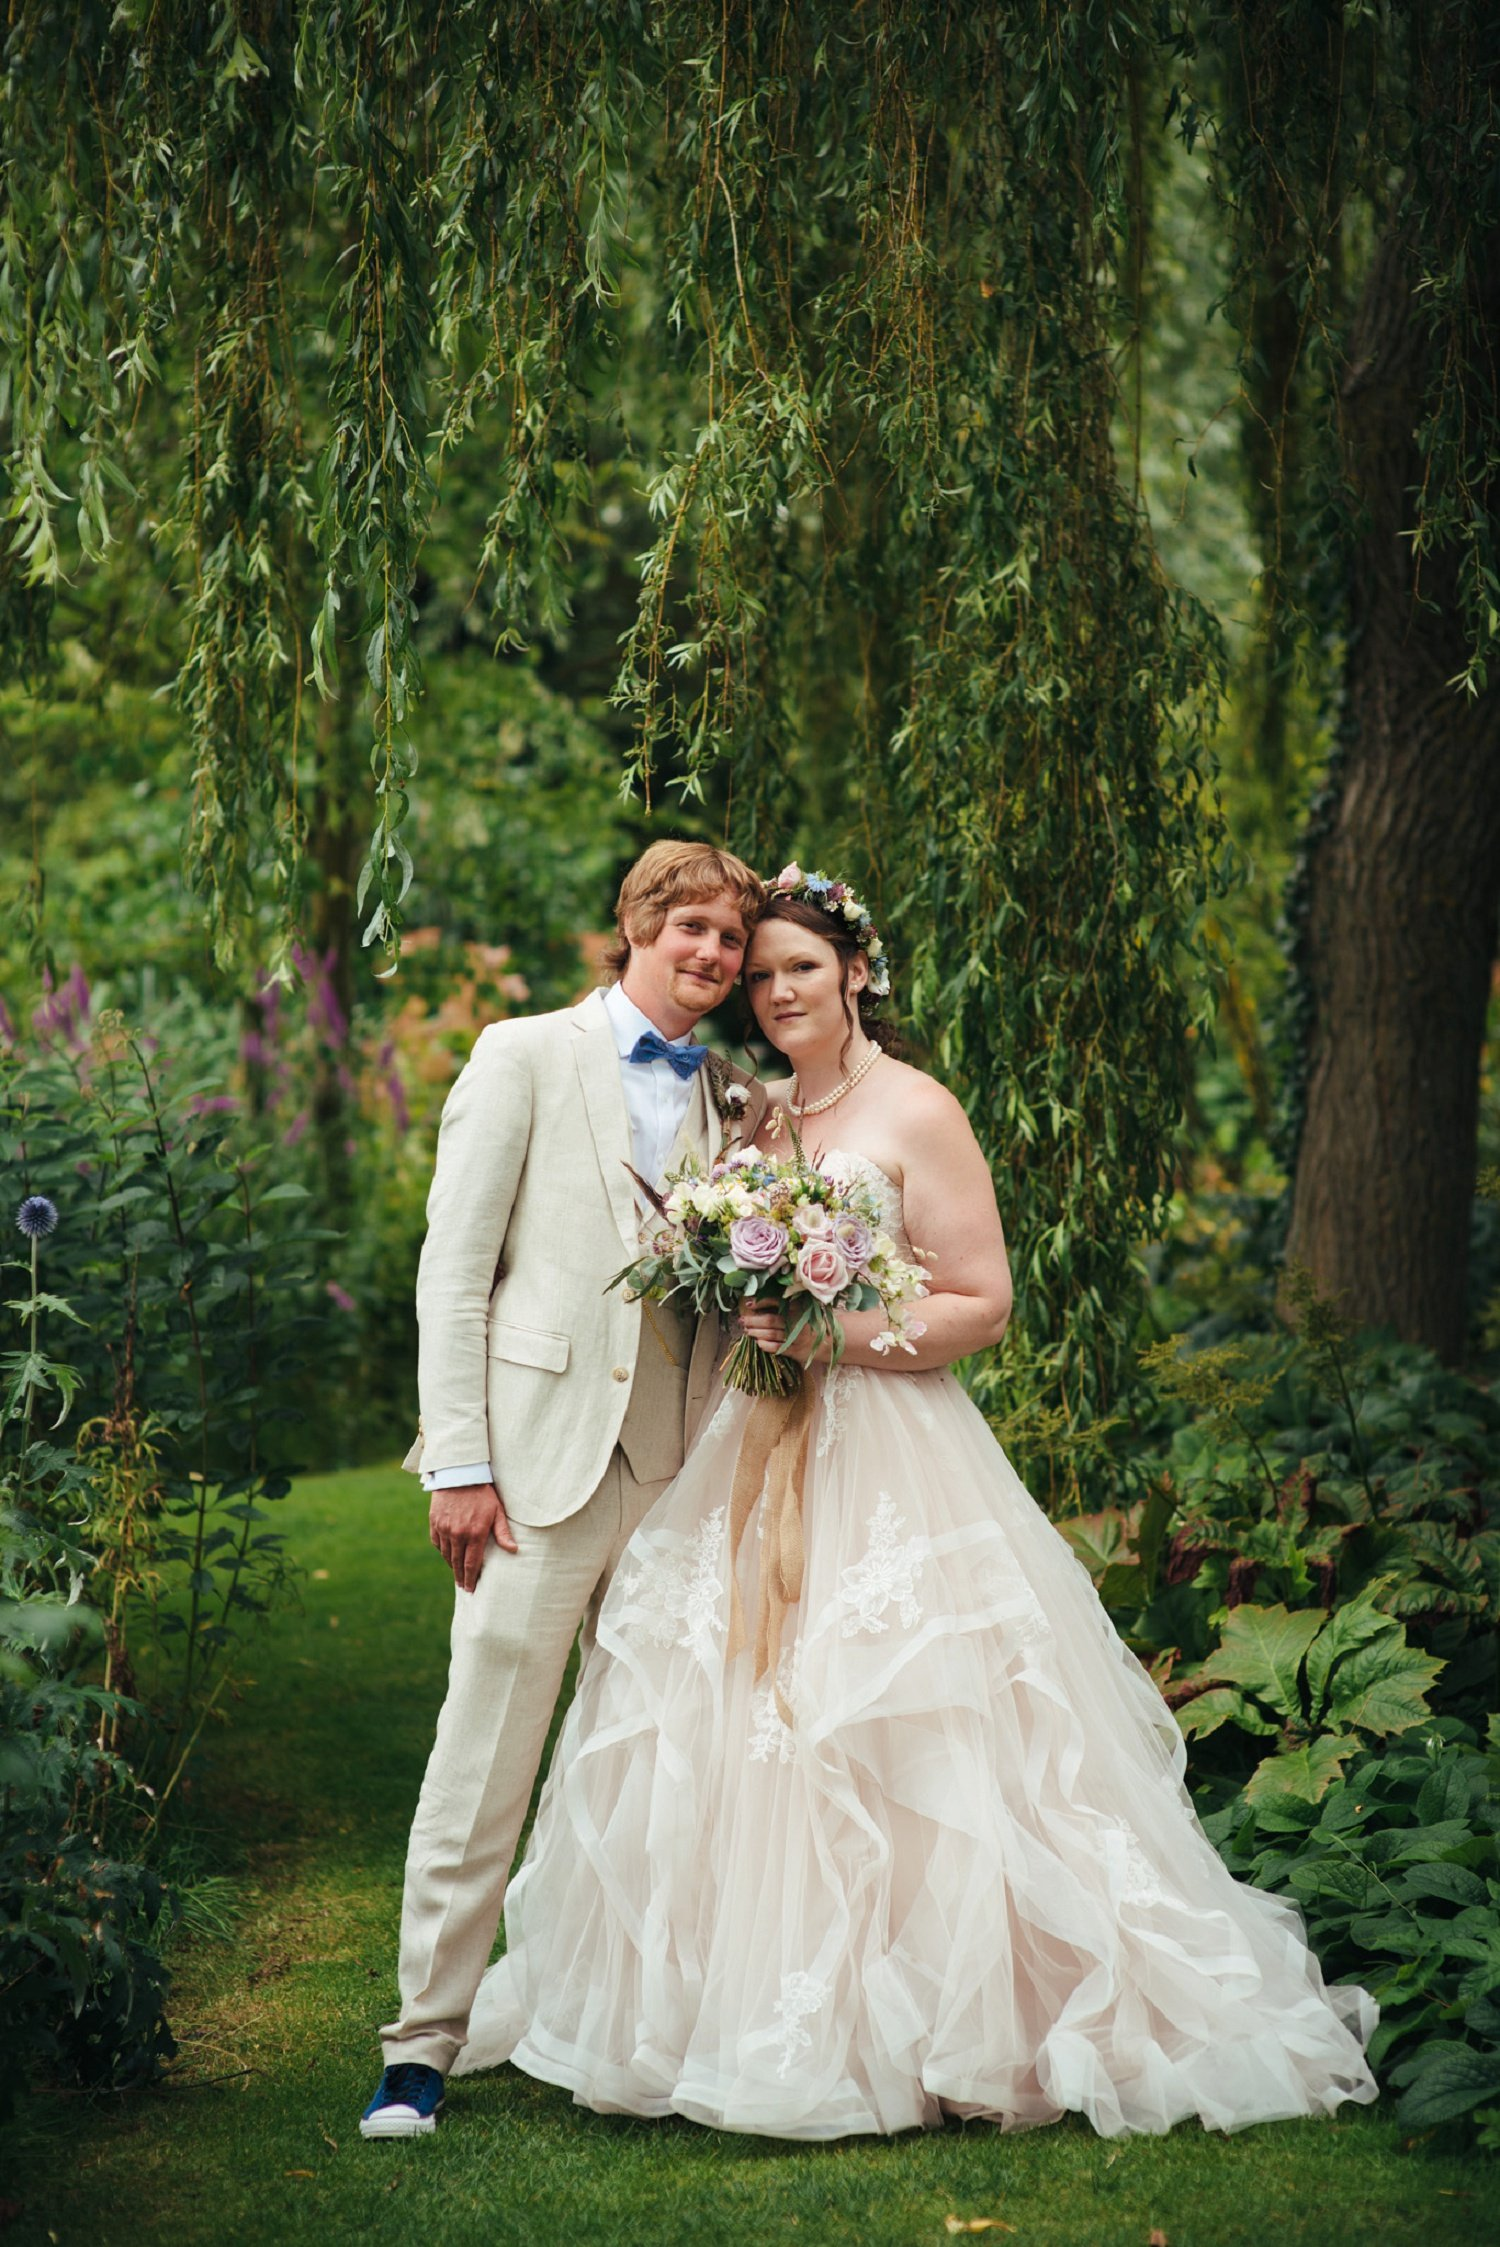 Bride and groom full body portrait at Westonbury Mill Water Gardens, in front of a weeping tree